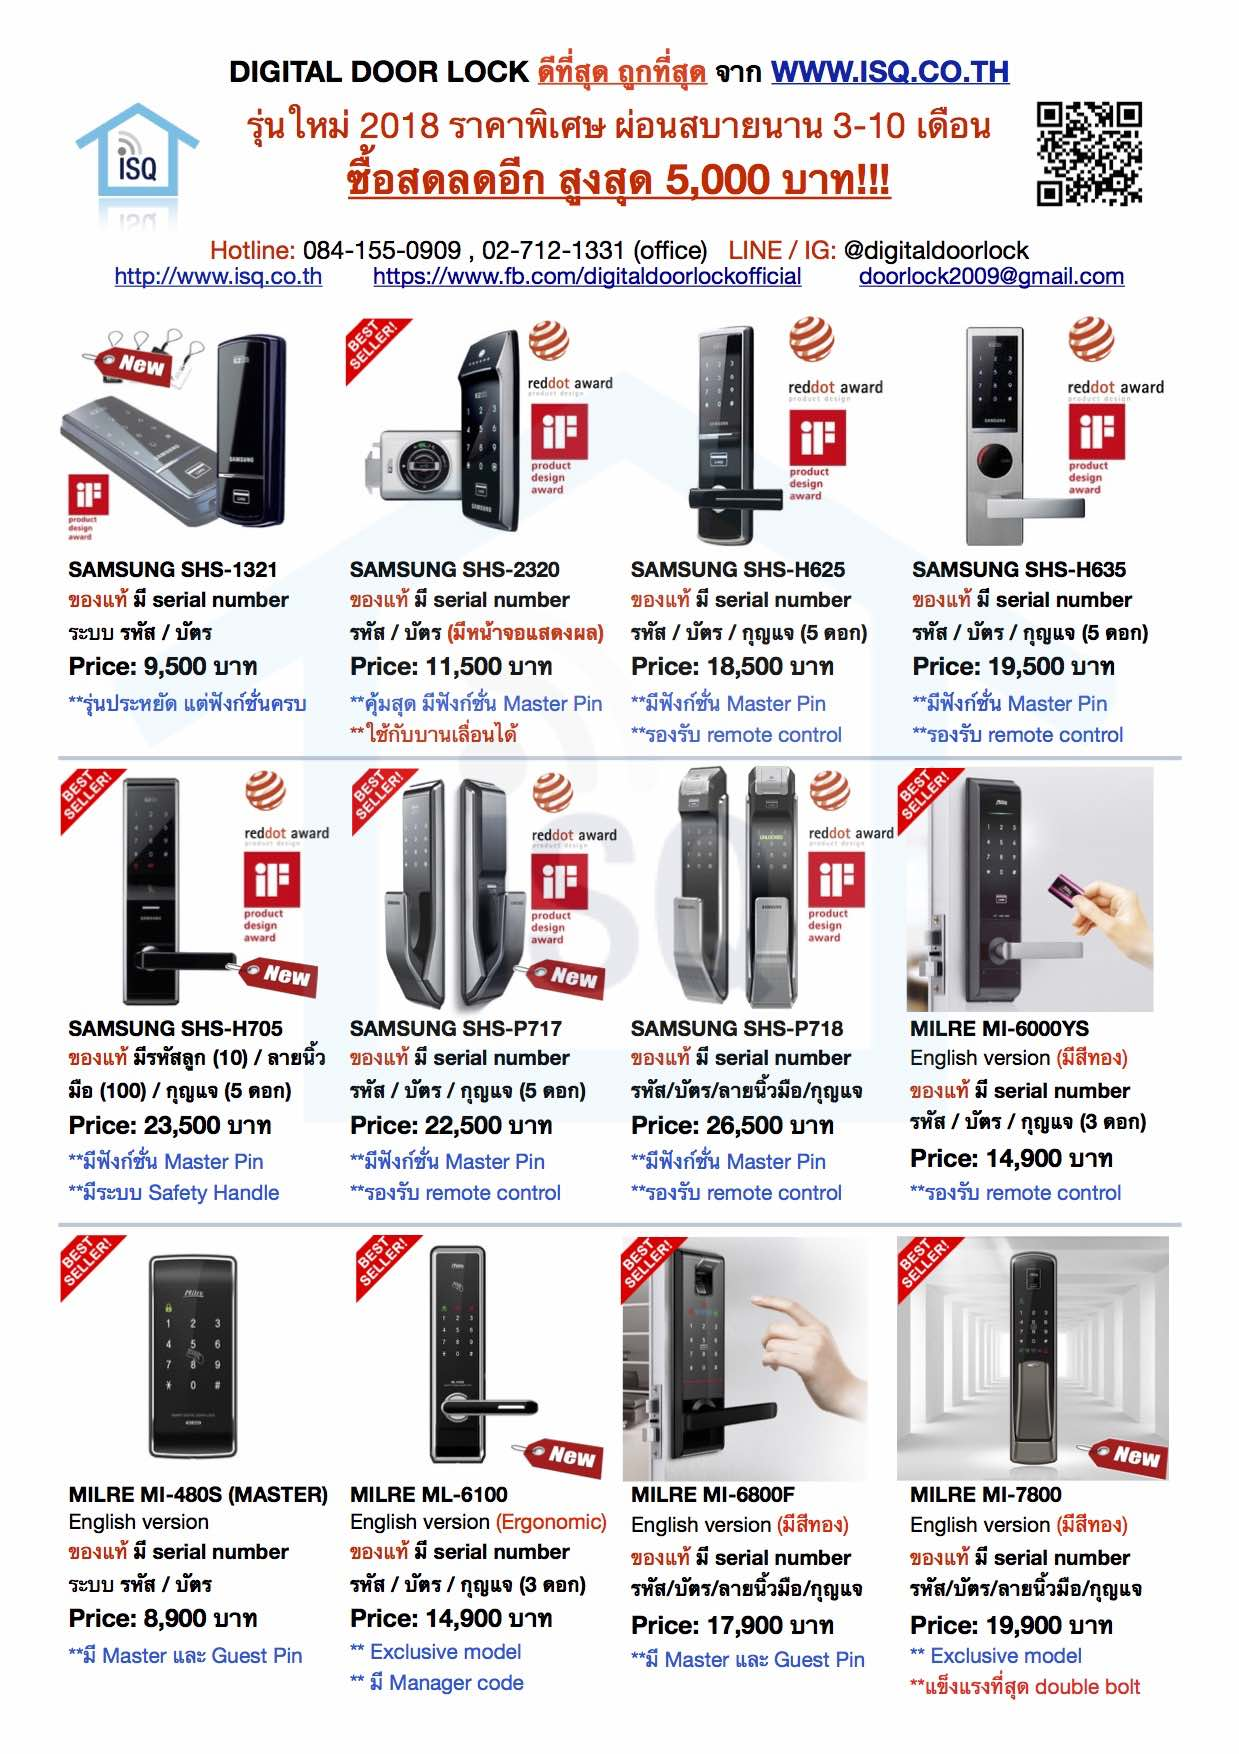 Digital door lock Pricelist 2017